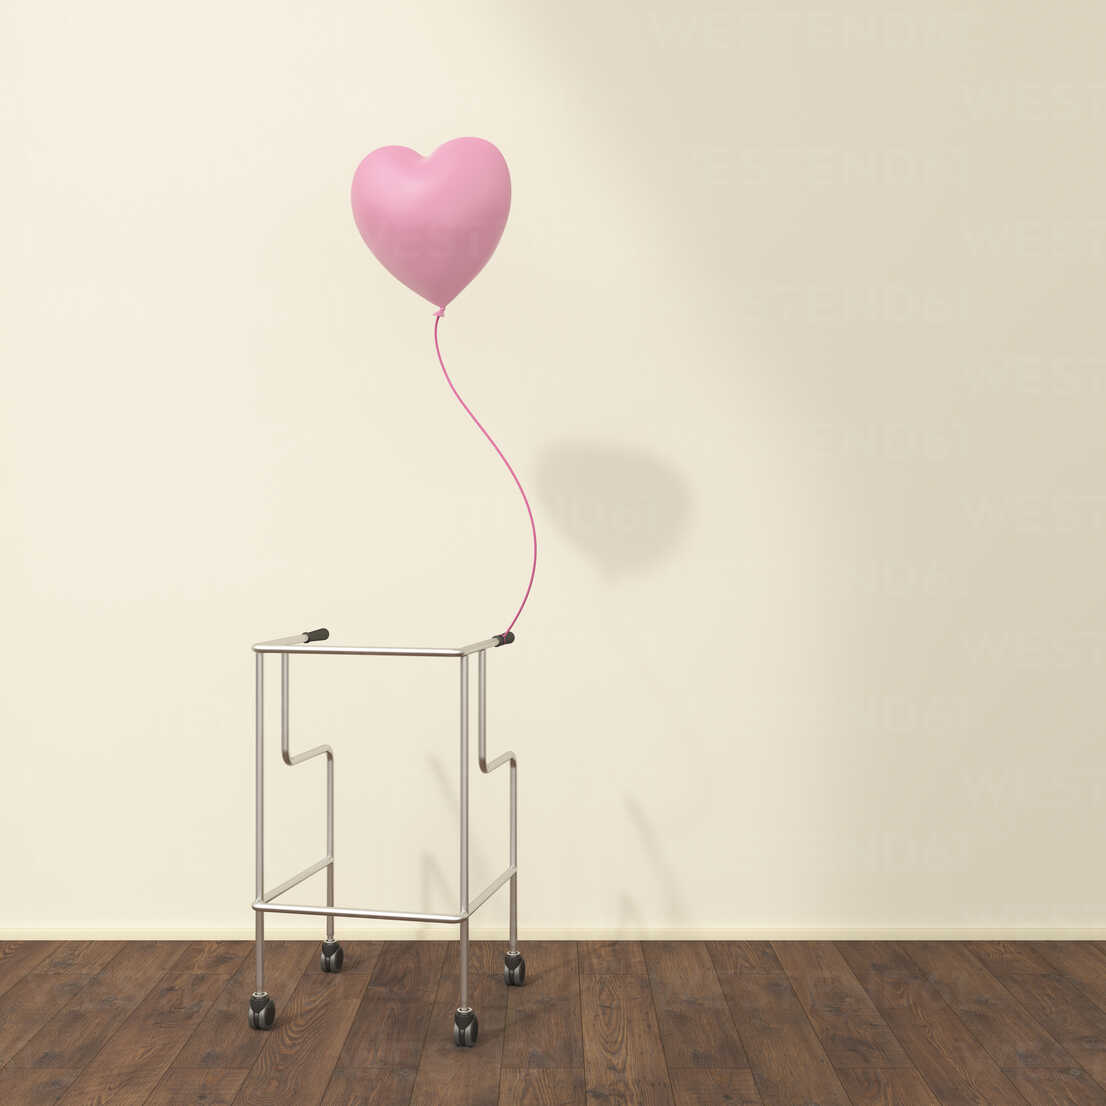 Wheeled walker and pink balloon in a waiting room, 3D rendering - UWF01319 - HuberStarke/Westend61